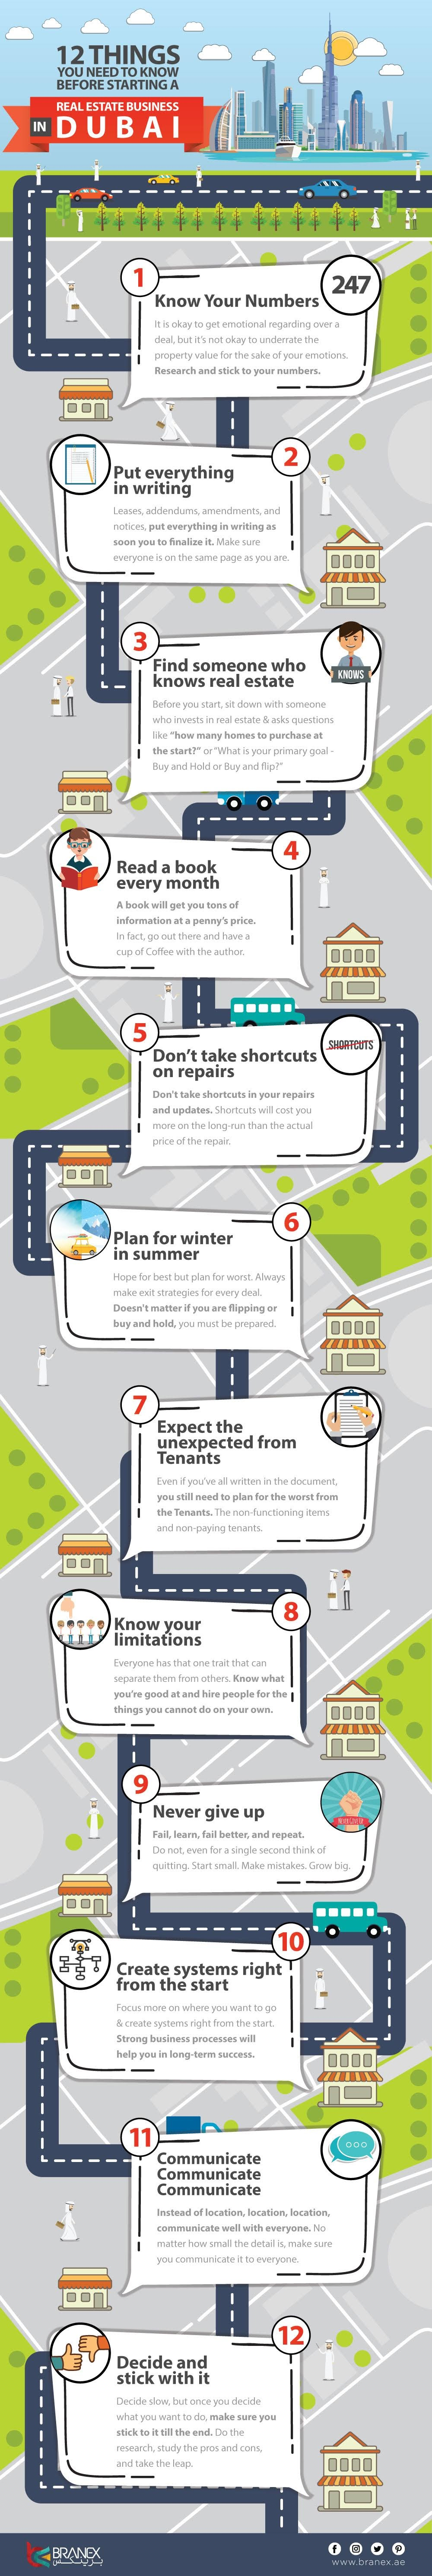 12 Things You Need to Know Before Starting a Real Estate Business in Dubai #infographic